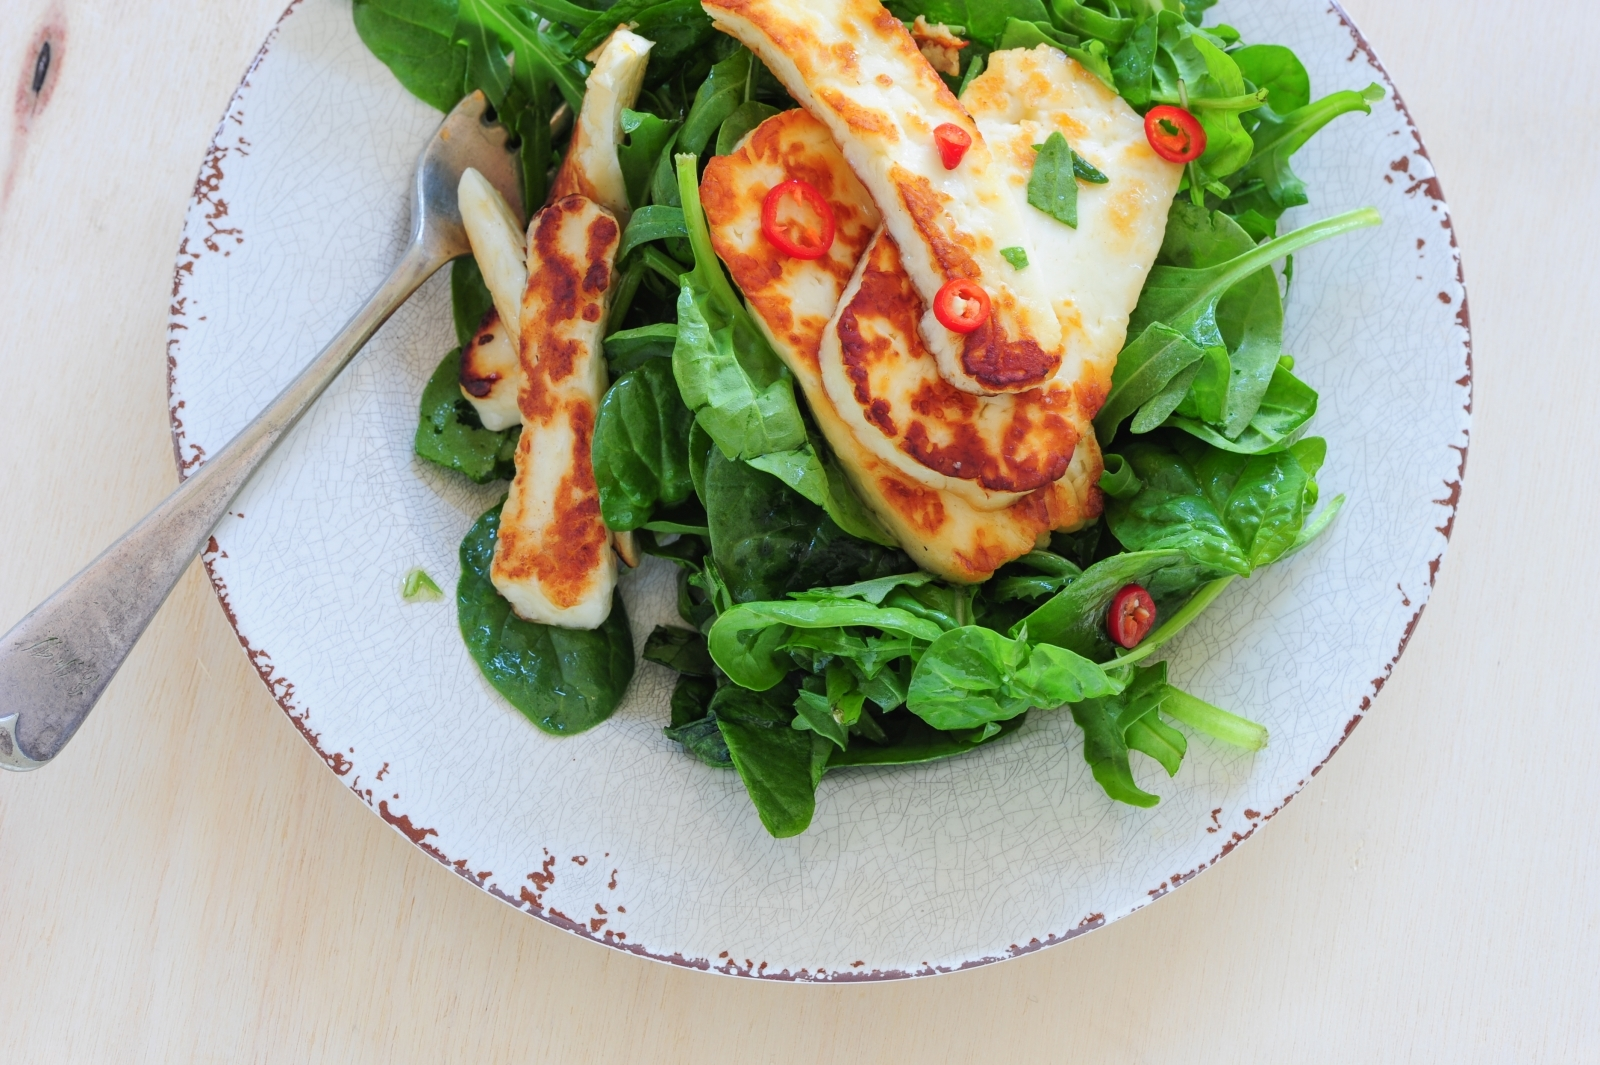 Grilled halloumi cheese